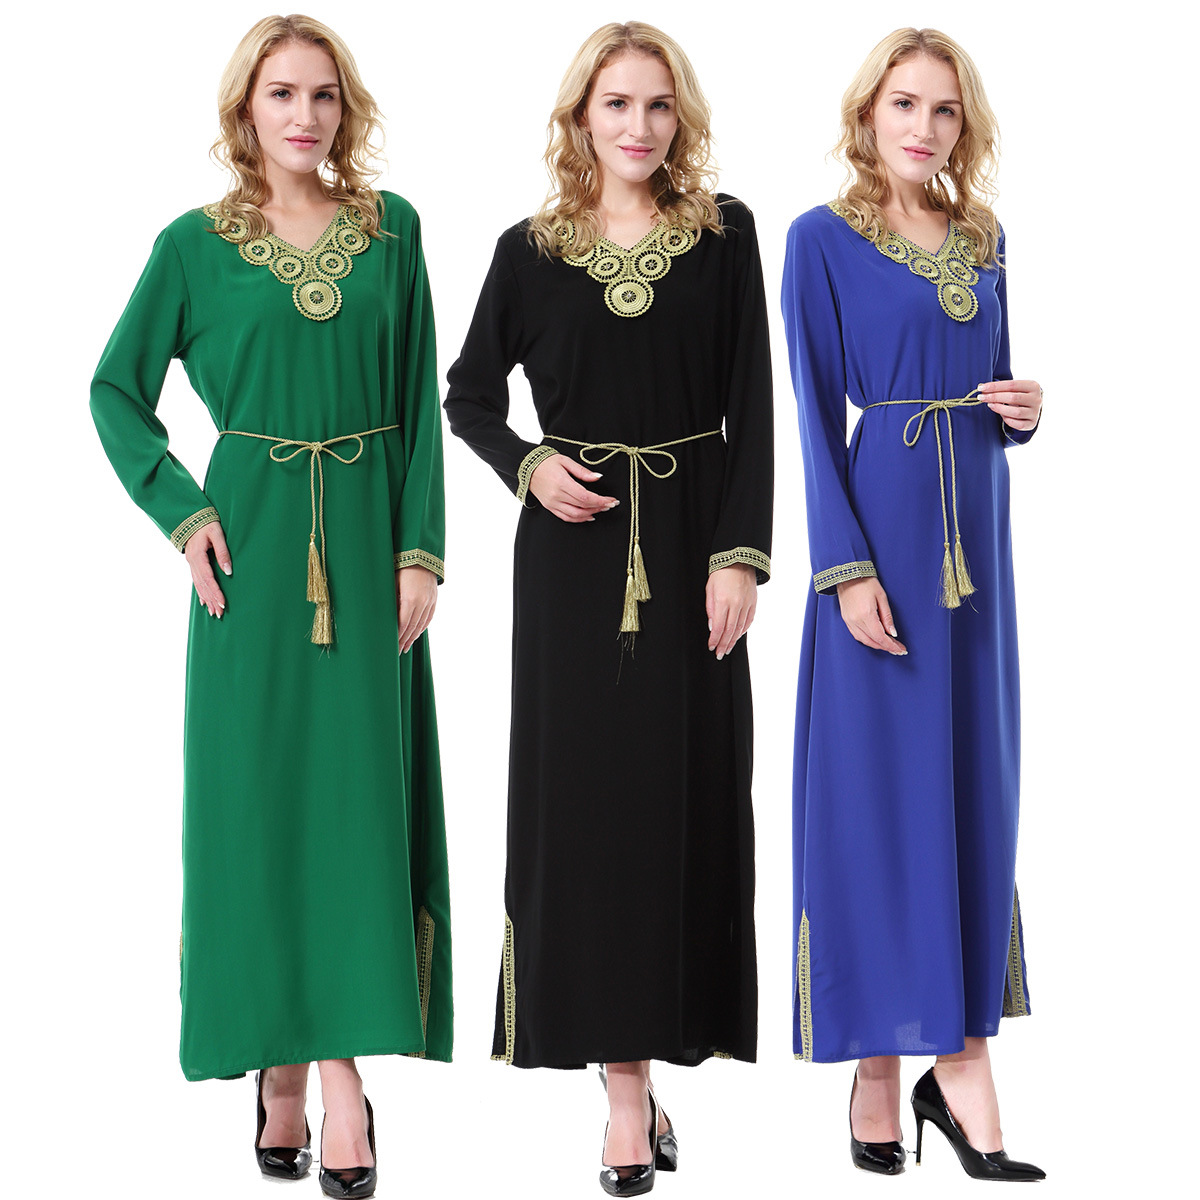 Caftan Jilbabs And Adult Linen Abayas Limited Real None Muslim Women Dress Pictures 2018 Arabia Middle East Malaysia Robe Abaya